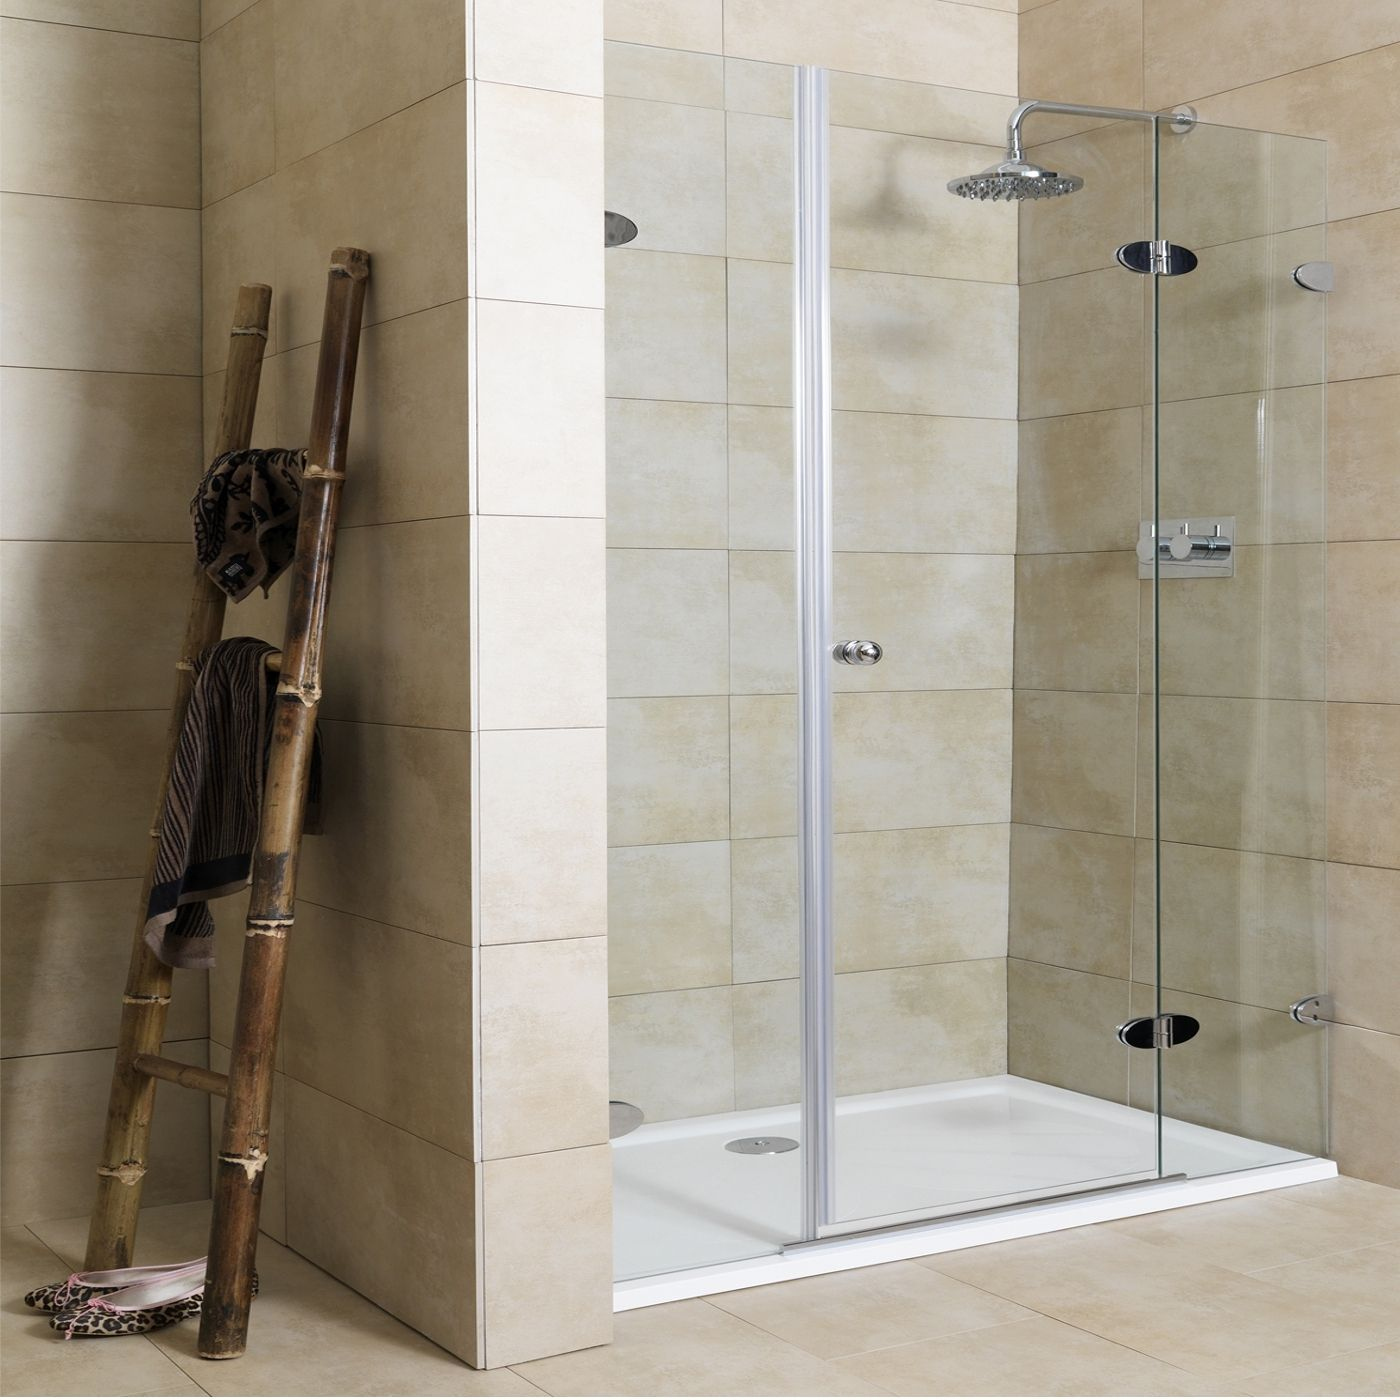 Small Bathroom With Frameless Shower: Bath Shower Doors Glass Frameless